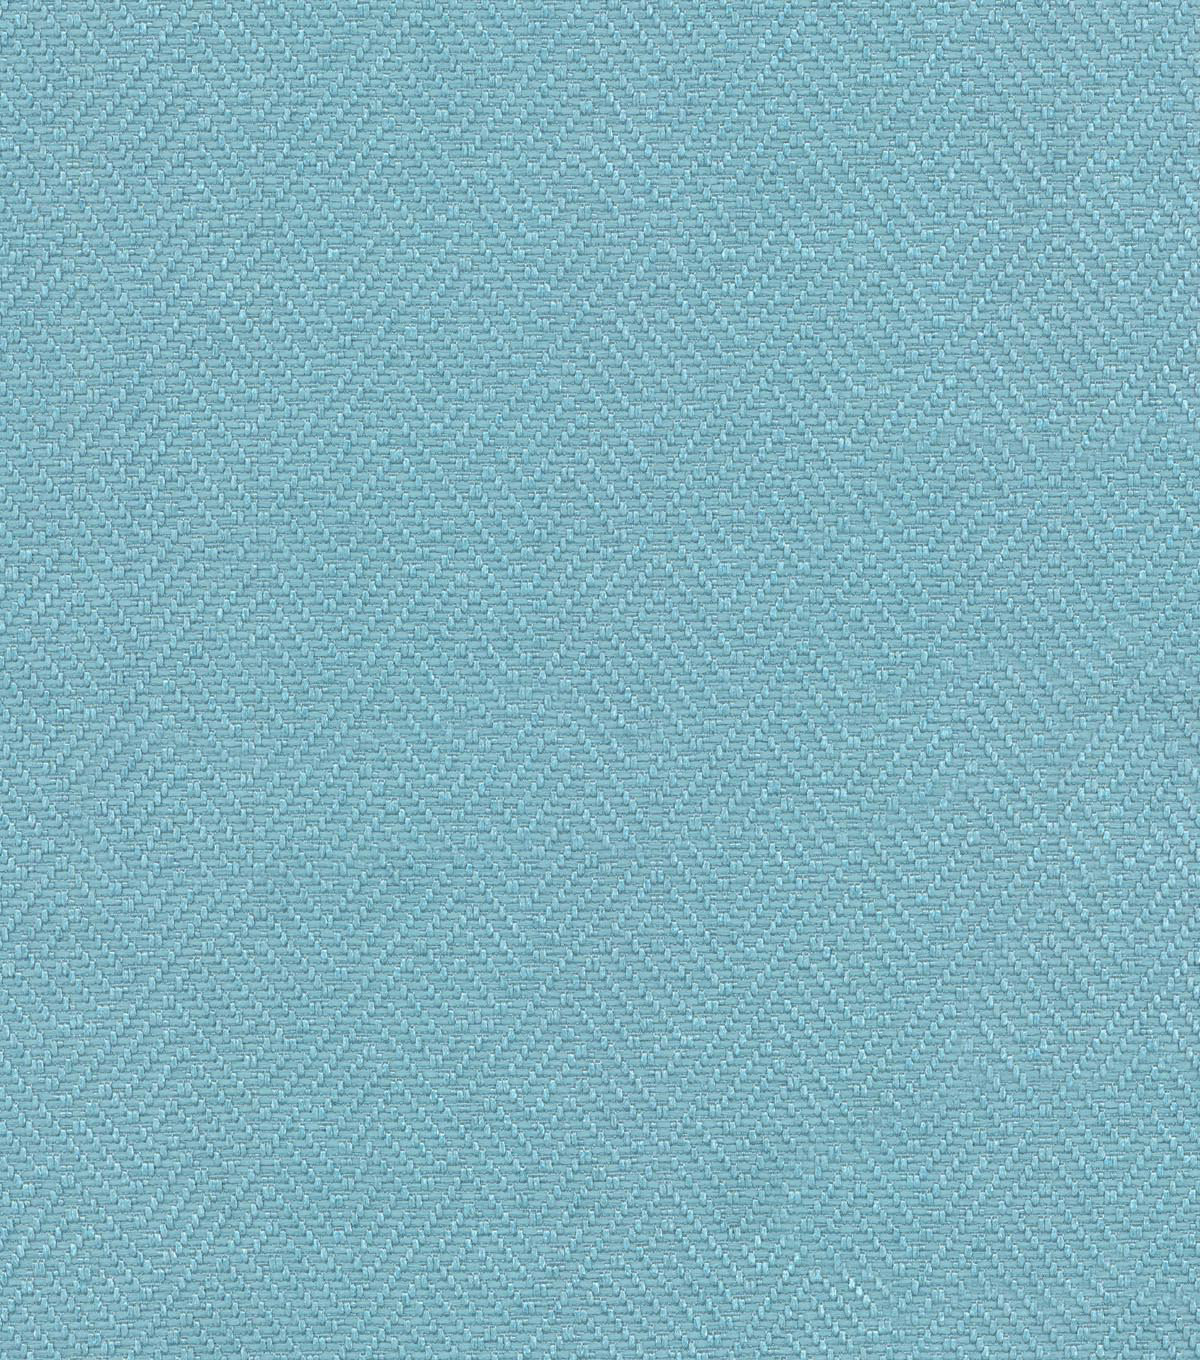 Home Decor 8\u0022x8\u0022 Swatch Fabric-PK Lifestyles Basketry Lagoon